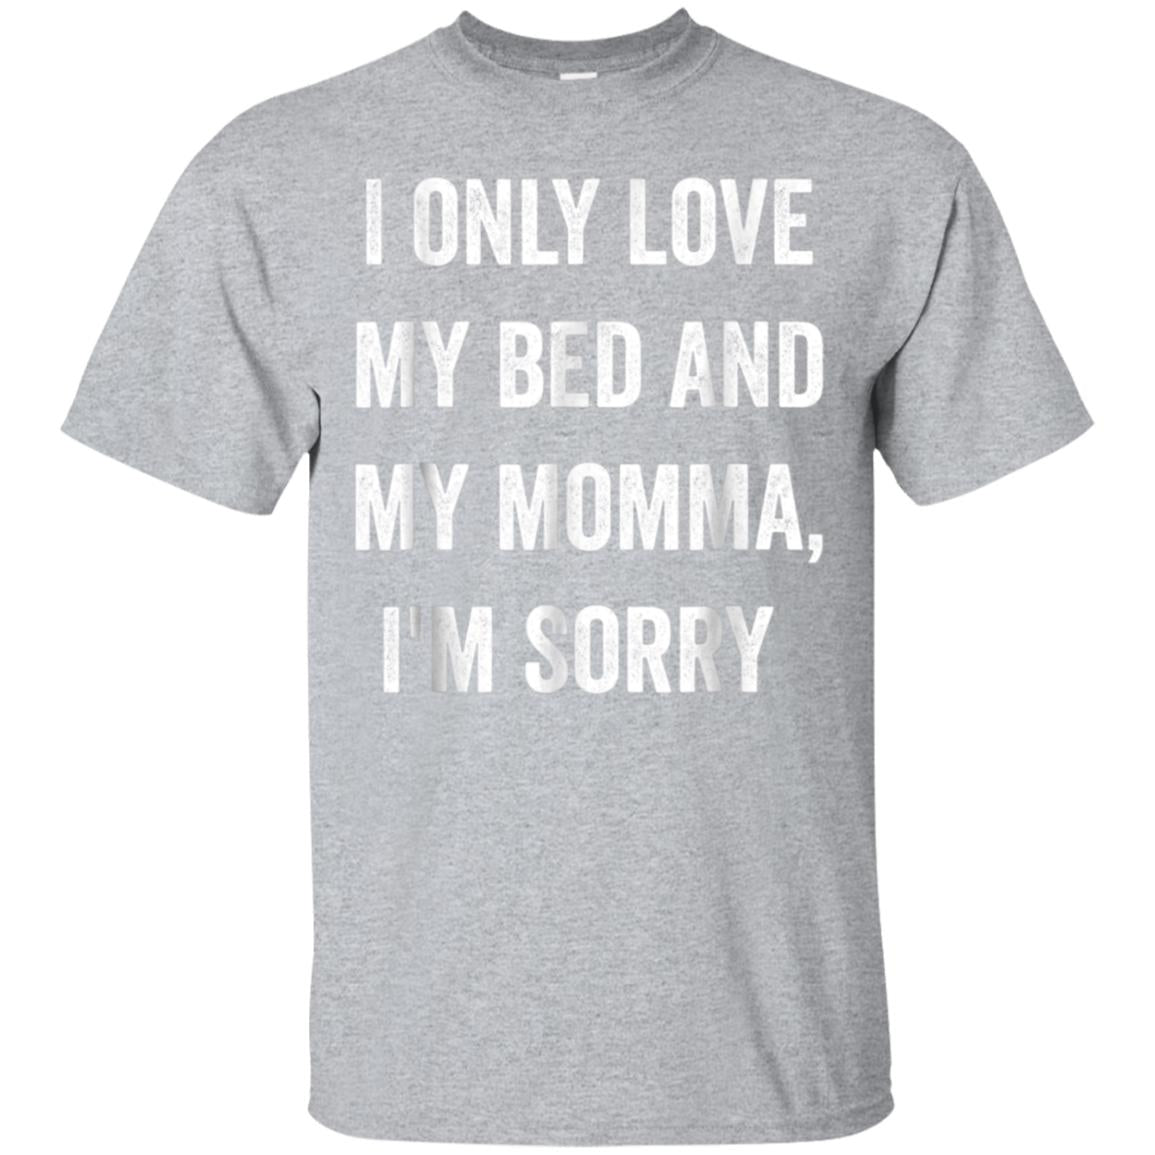 I Only Love My Bed And My Momma Shirt 99promocode